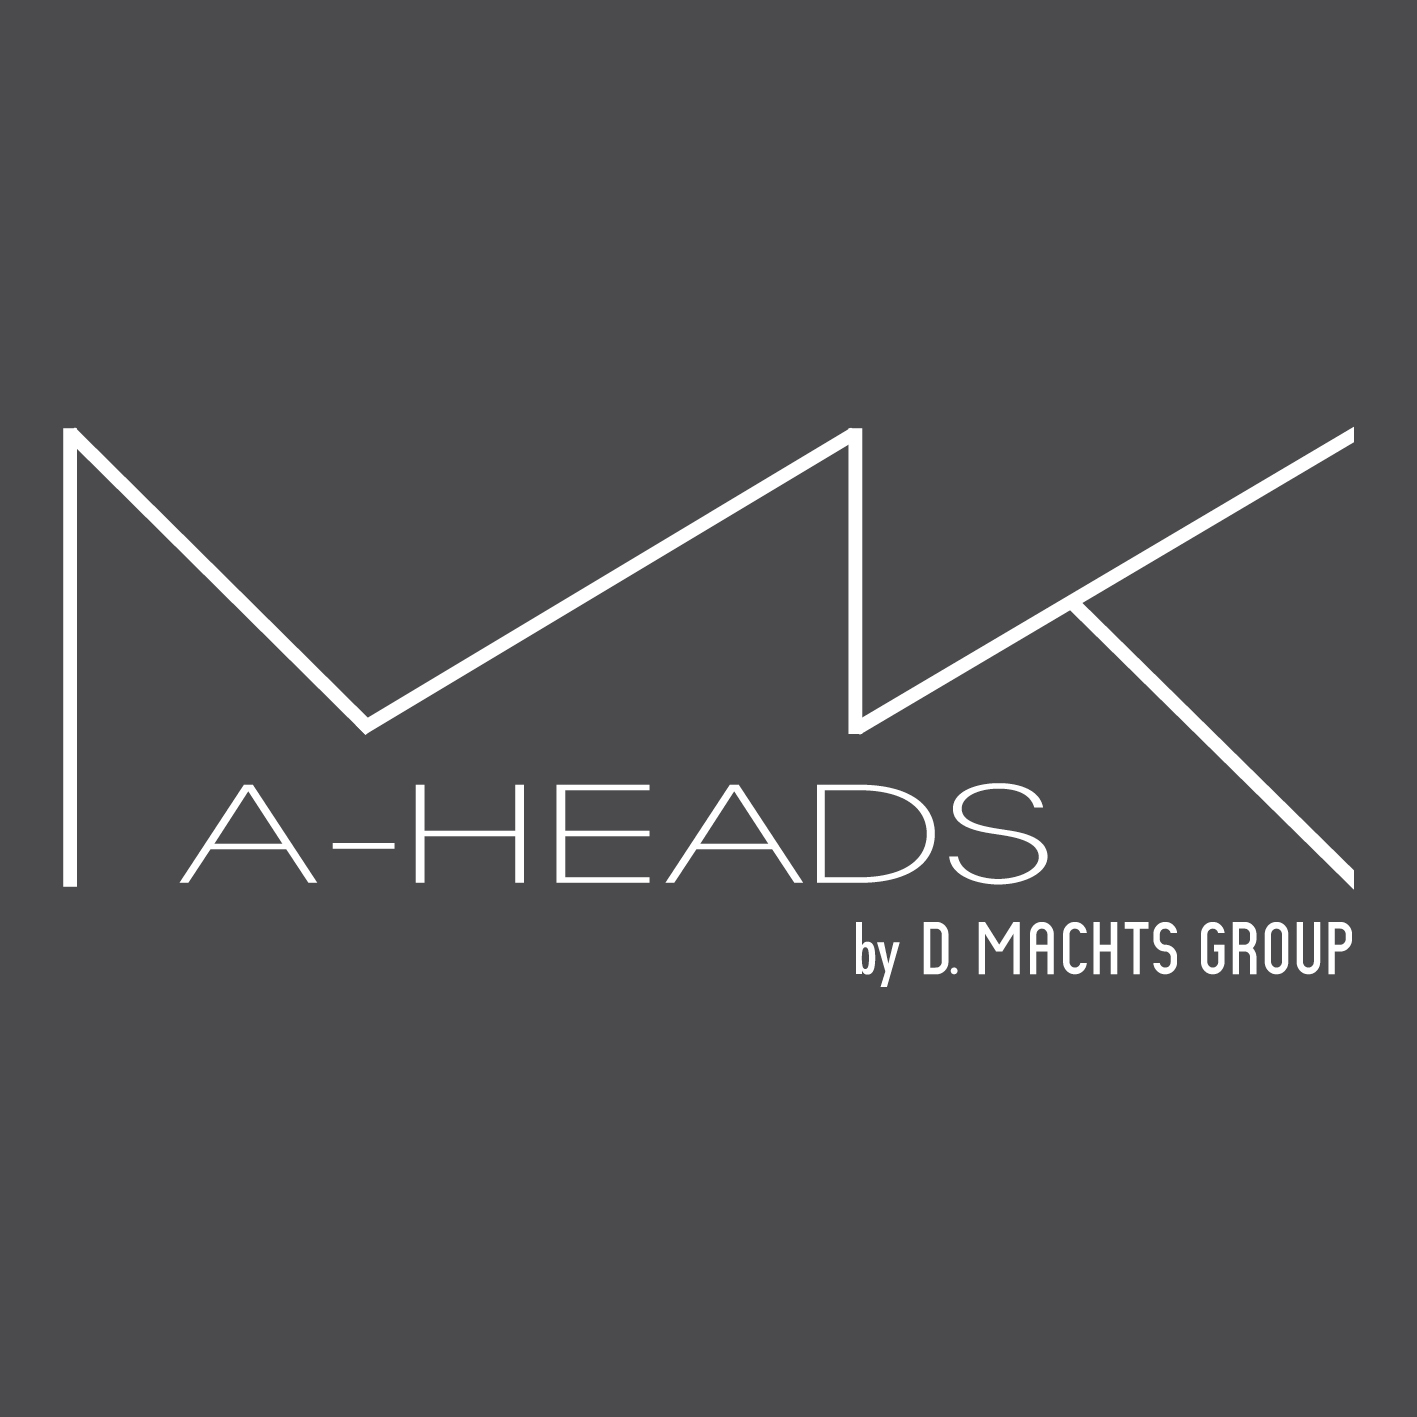 A-heads Academy by D. Machts Group